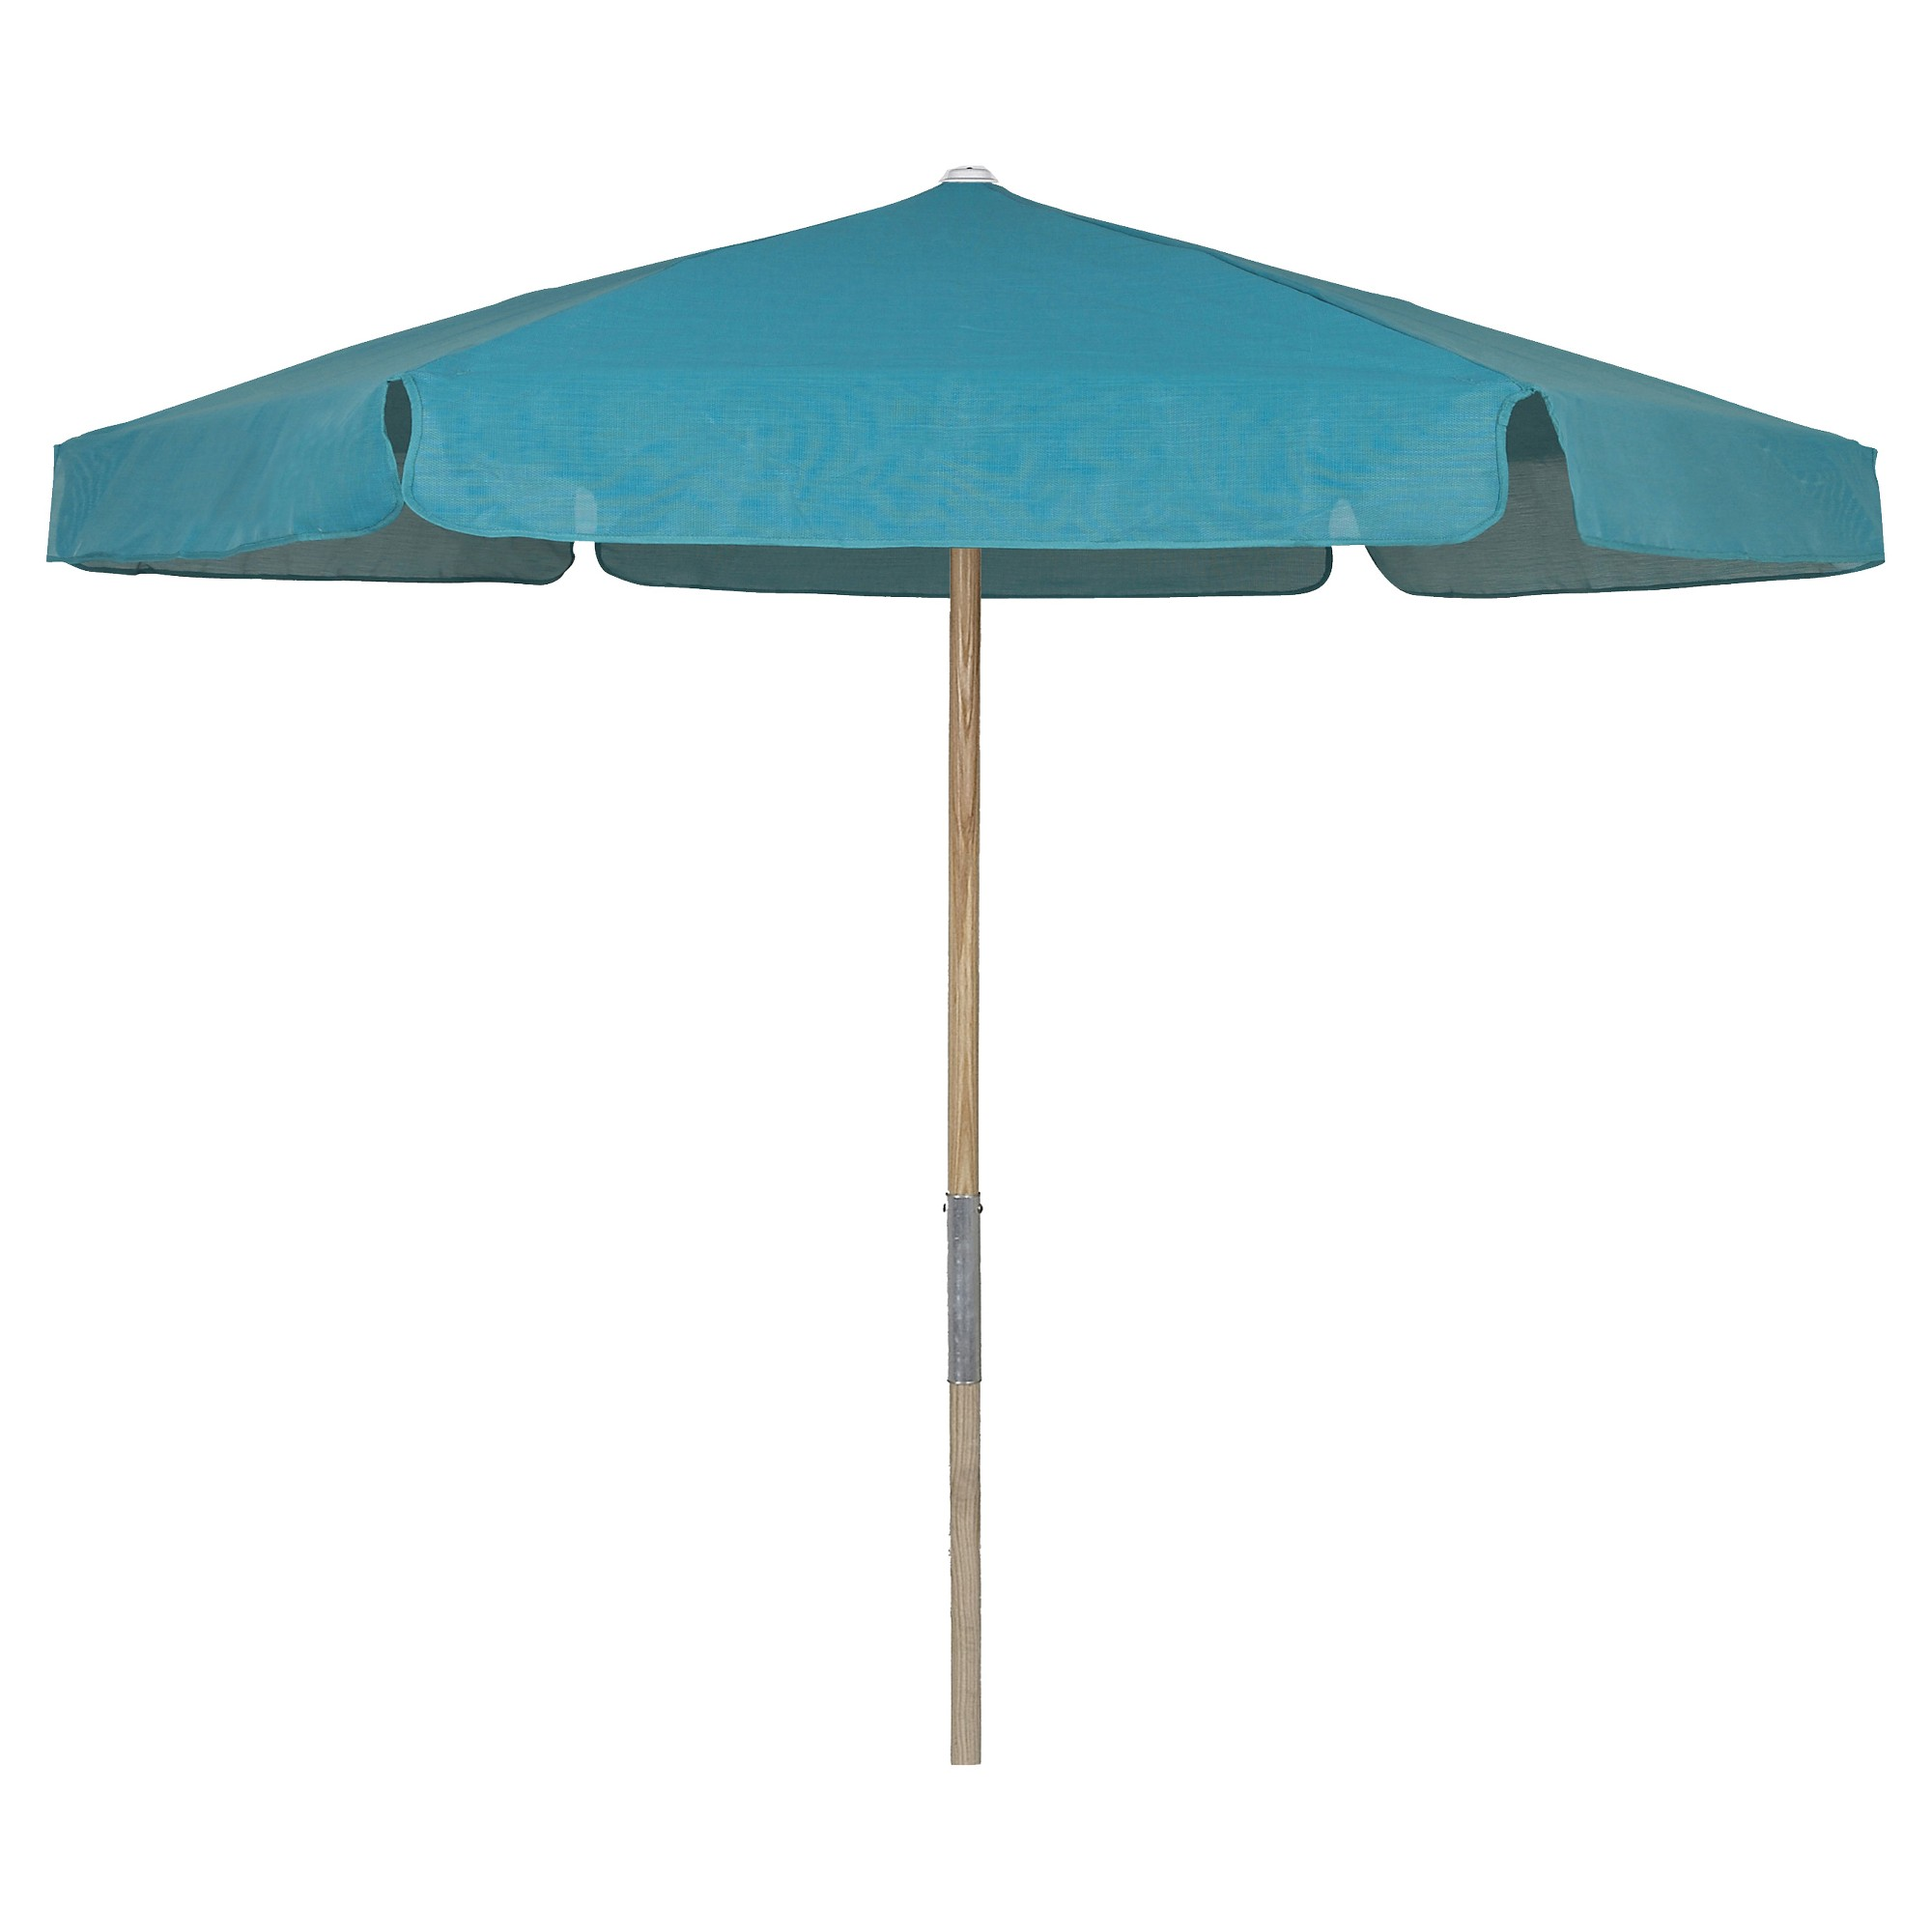 FiberBuilt 7 5 Patio Umbrella Vinyl Weave Teal Blue